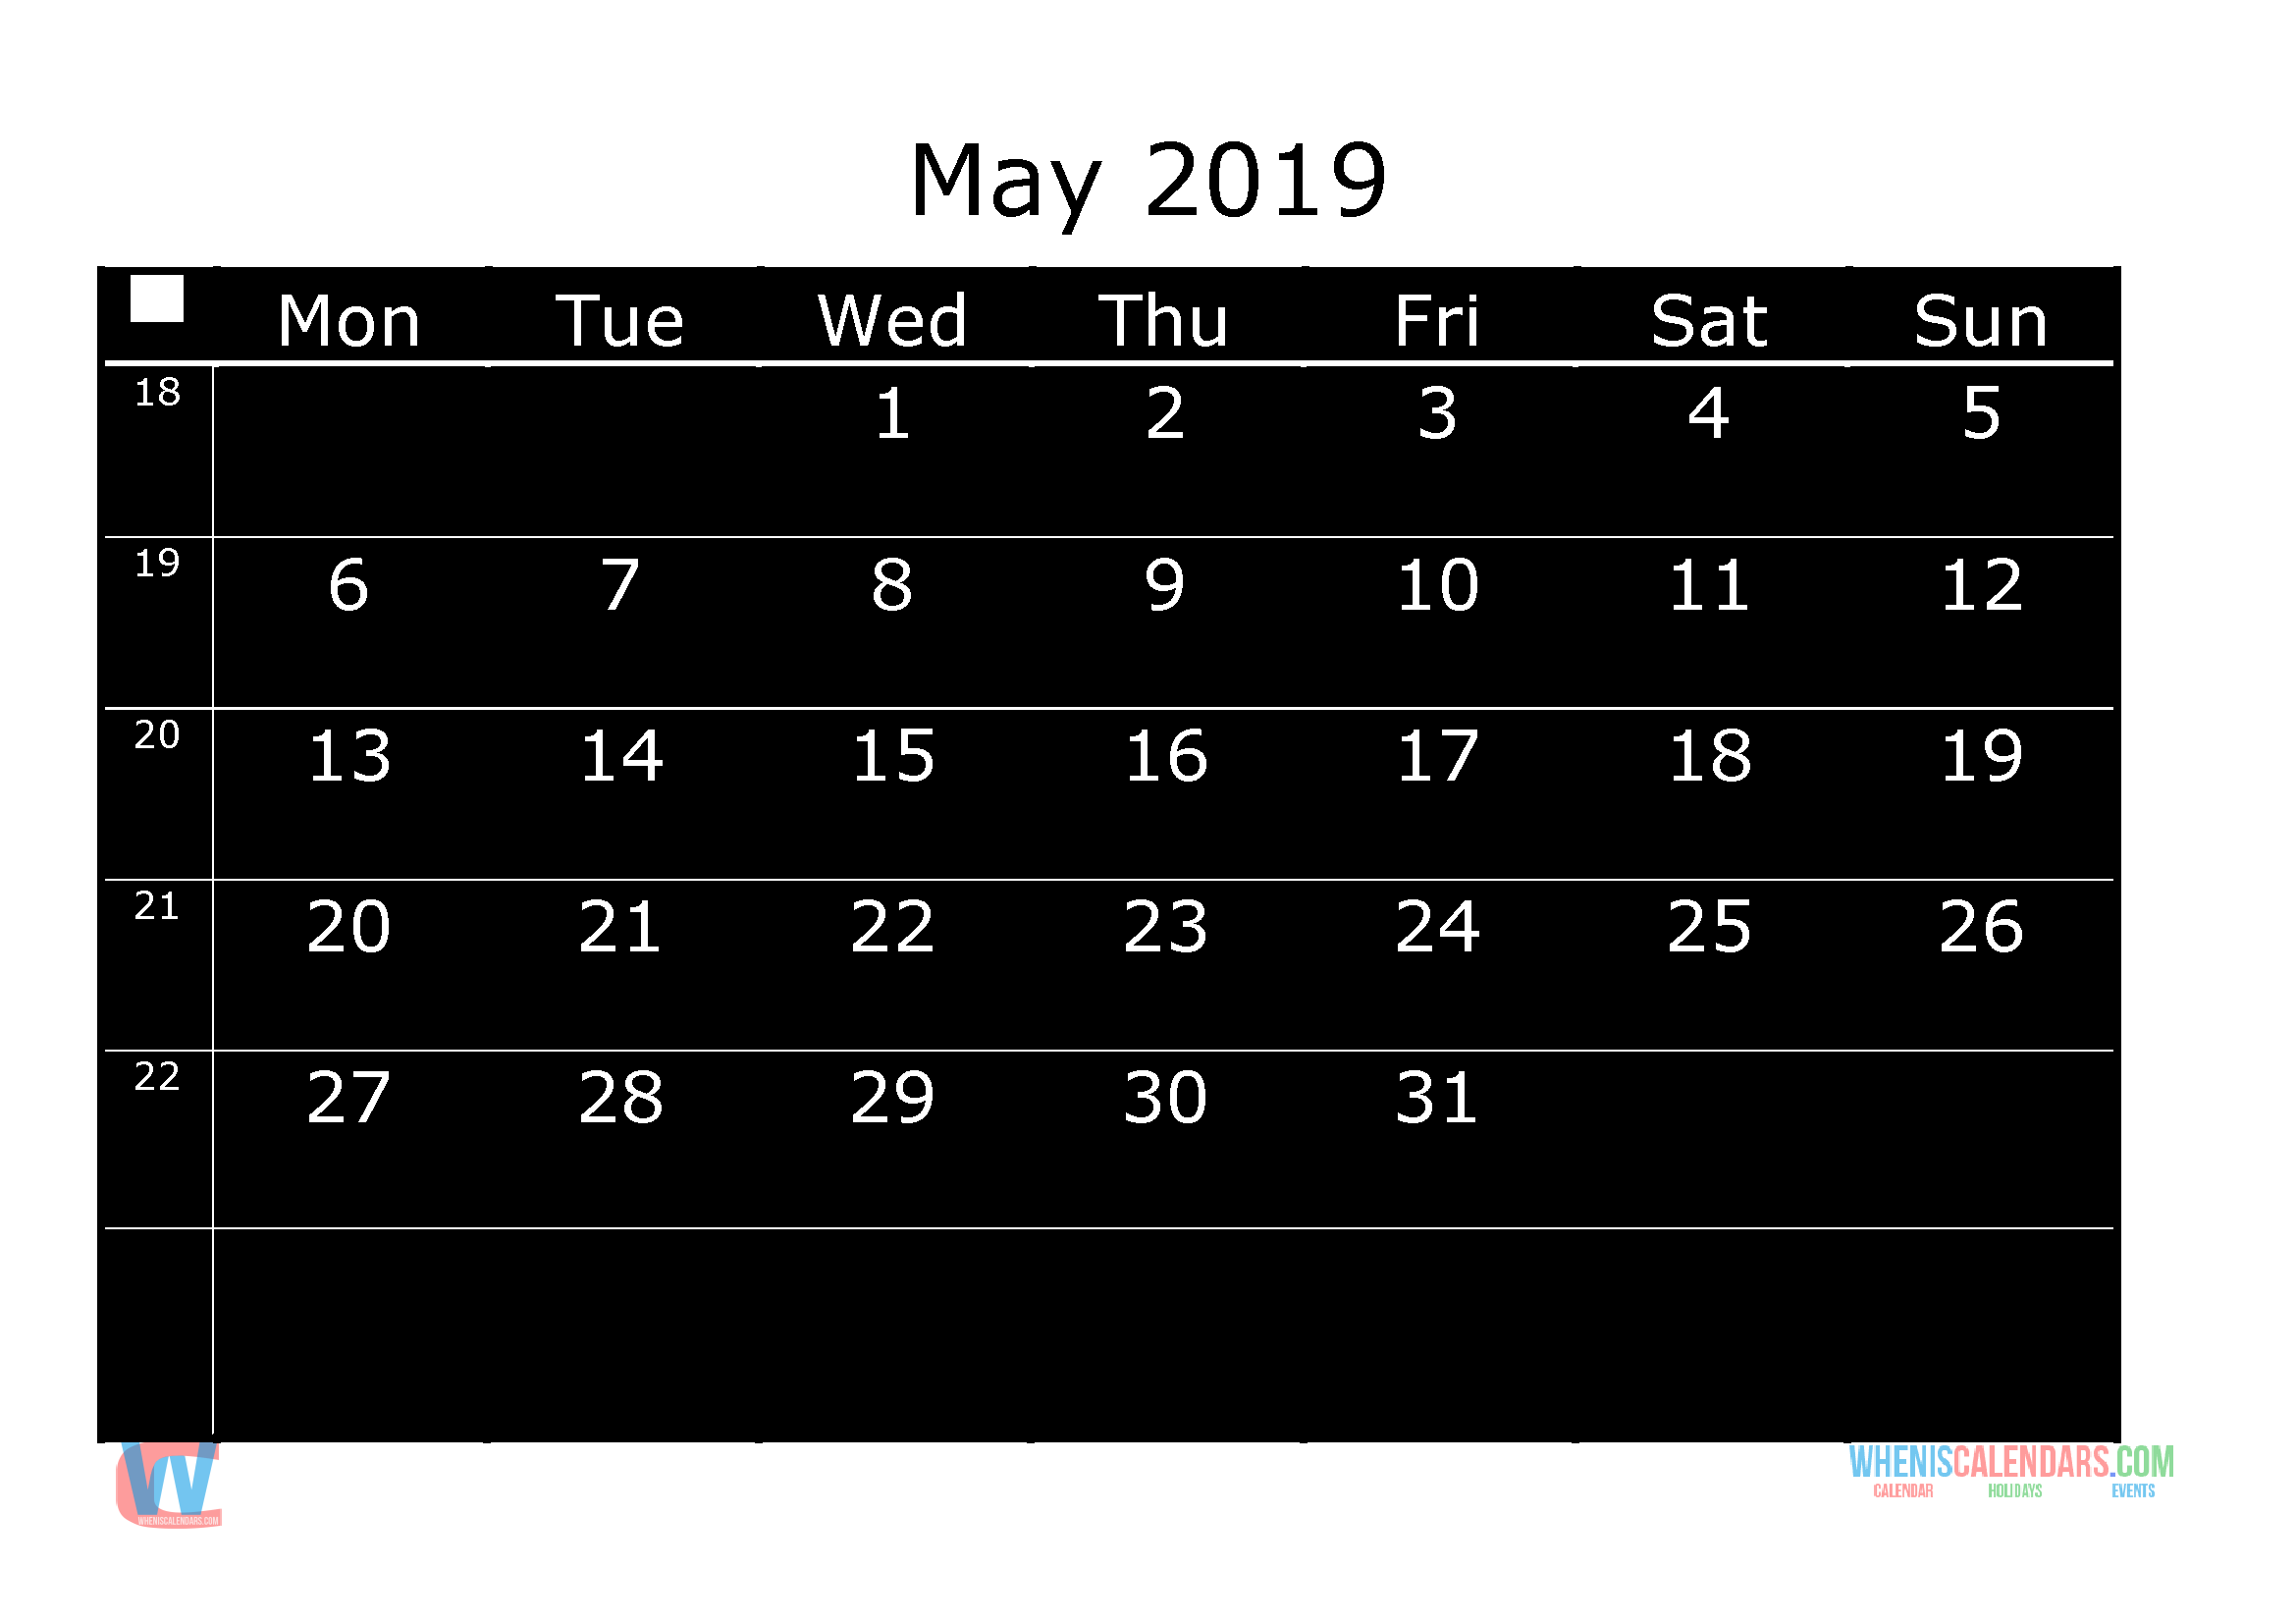 printable monthly calendar 2019 may week day starts monday